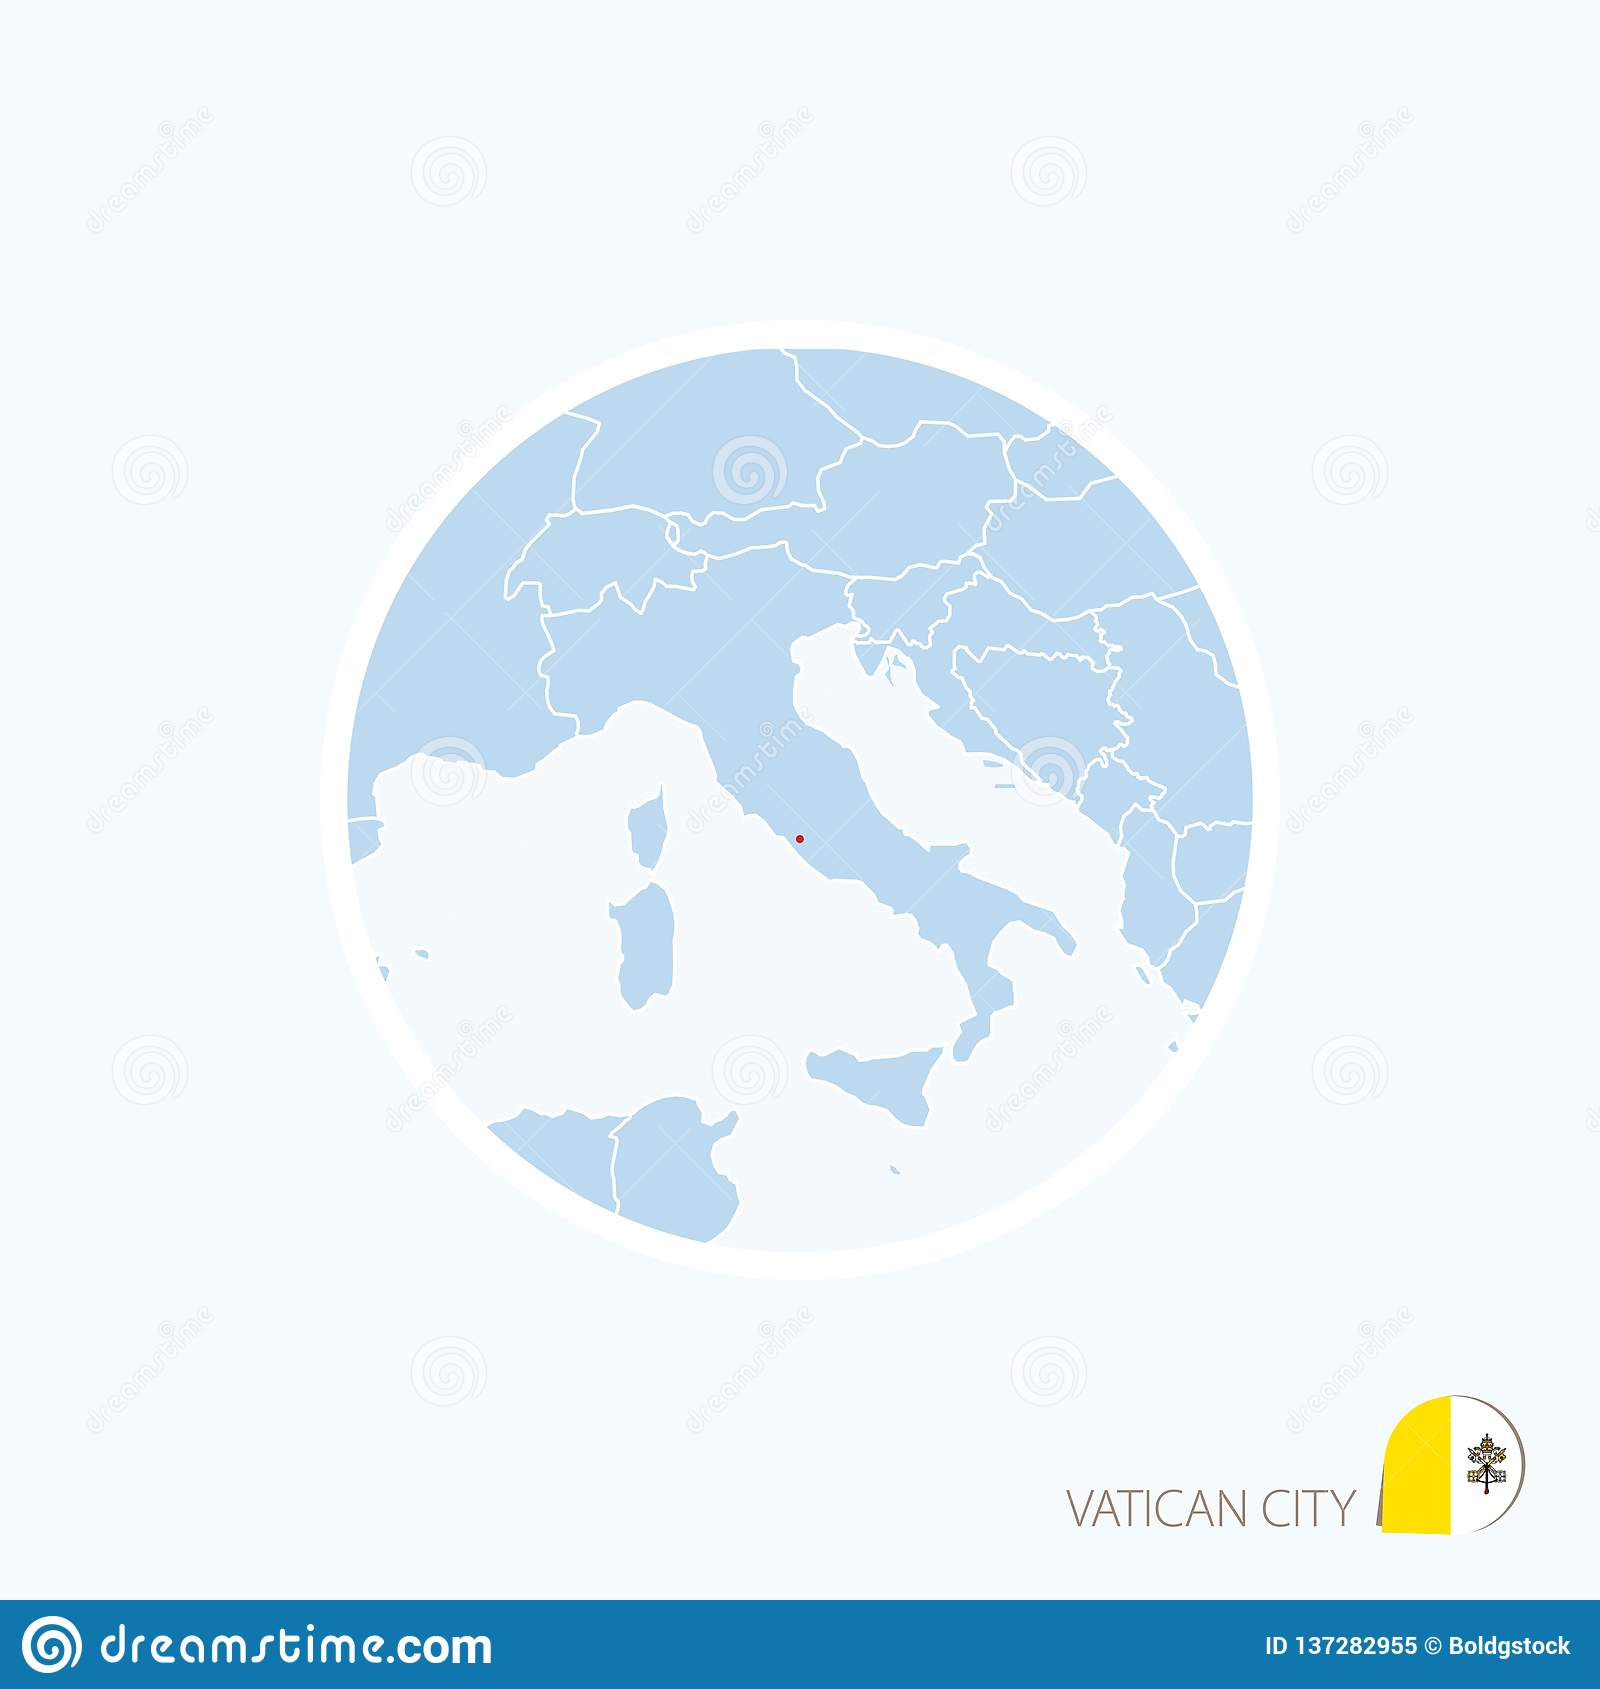 Map Icon Of Vatican City  Blue Map Of Europe With